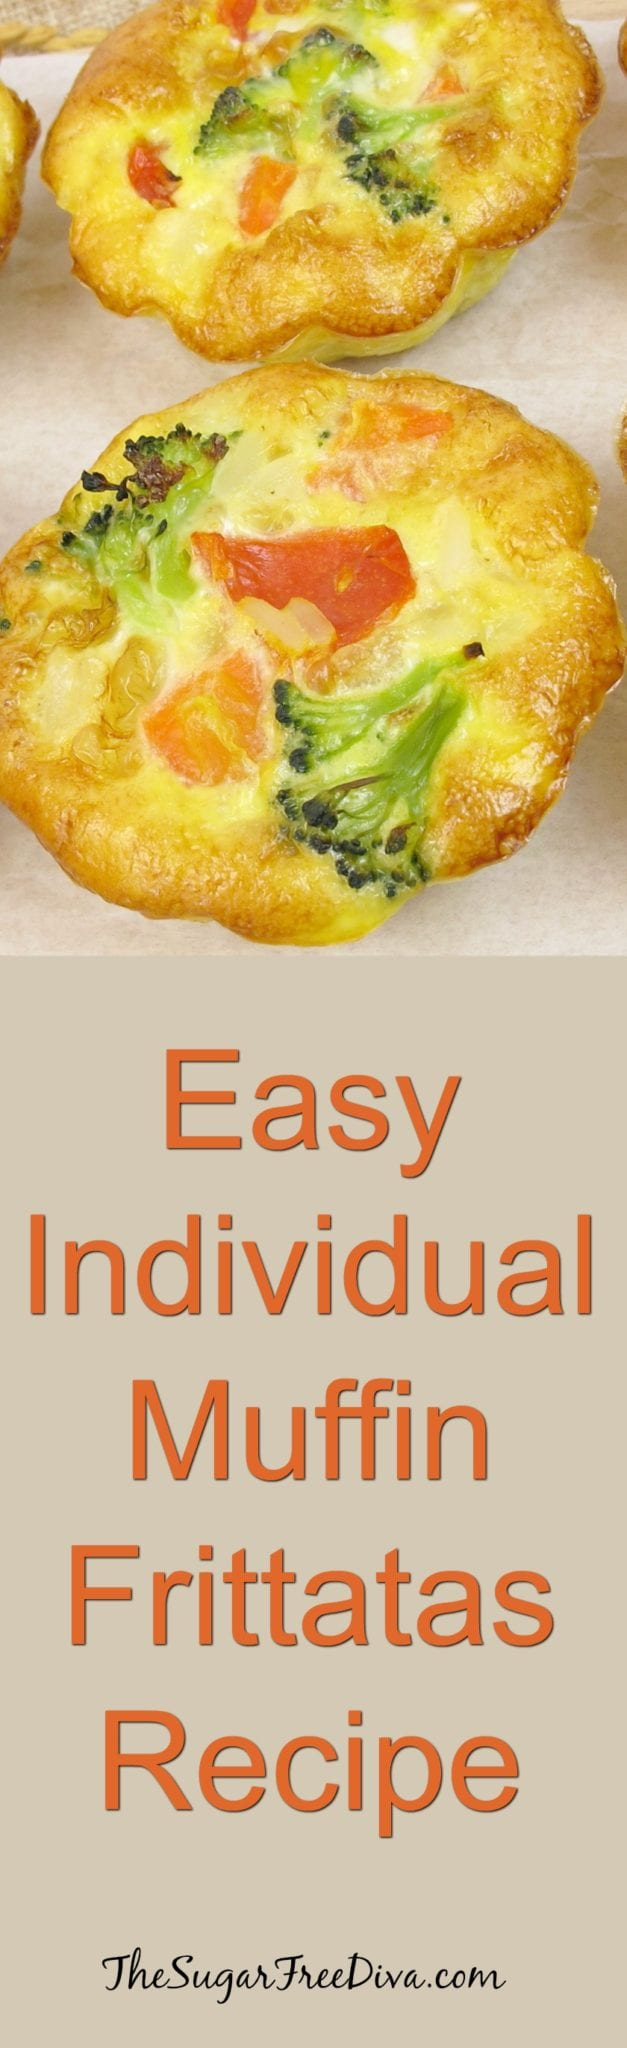 Easy Individual Muffin Frittatas Recipe